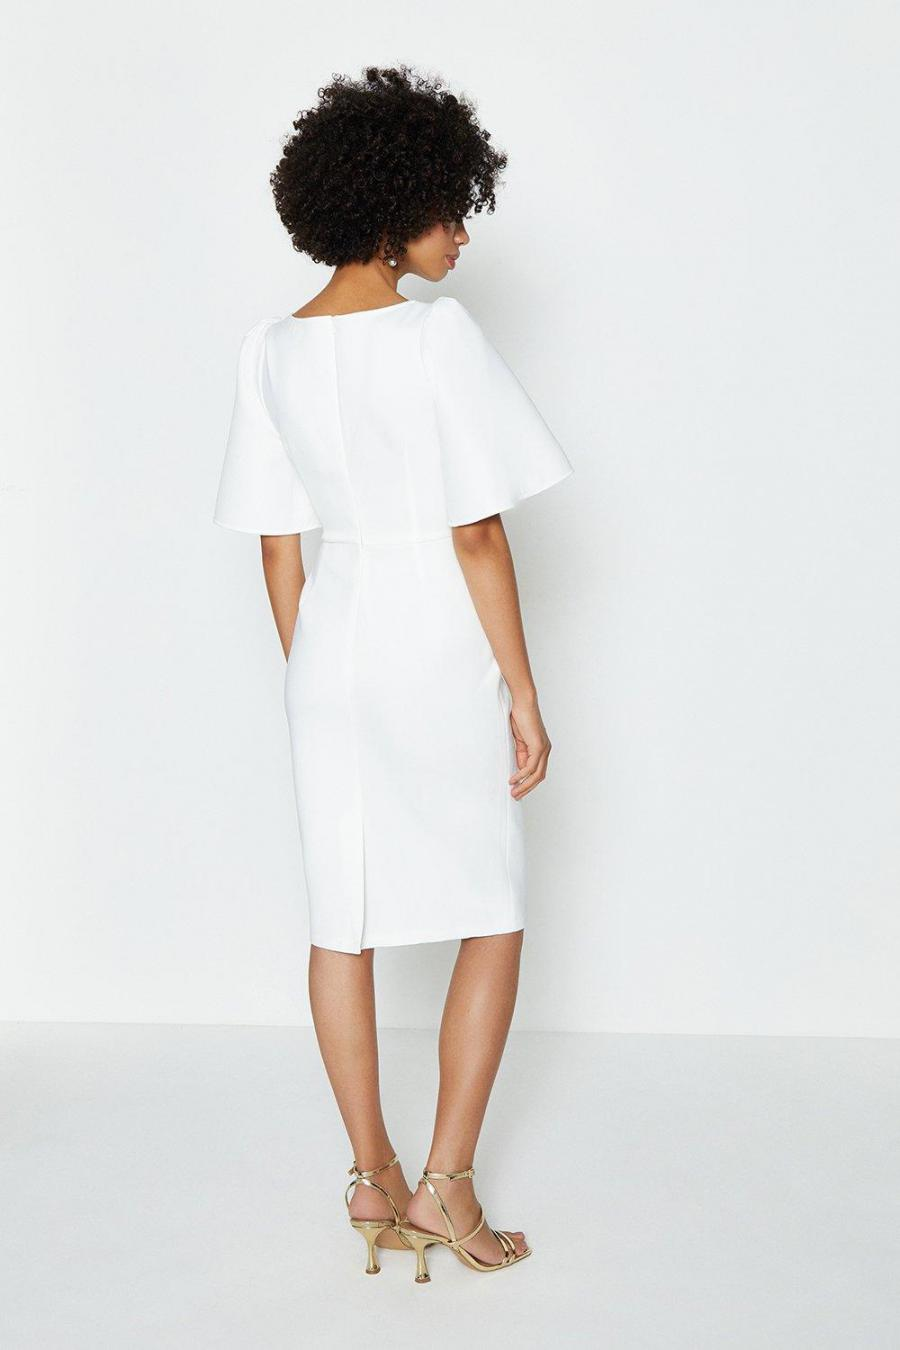 Coast Midi Dresses | Womens Square Neck Flare Sleeve Dress Ivory